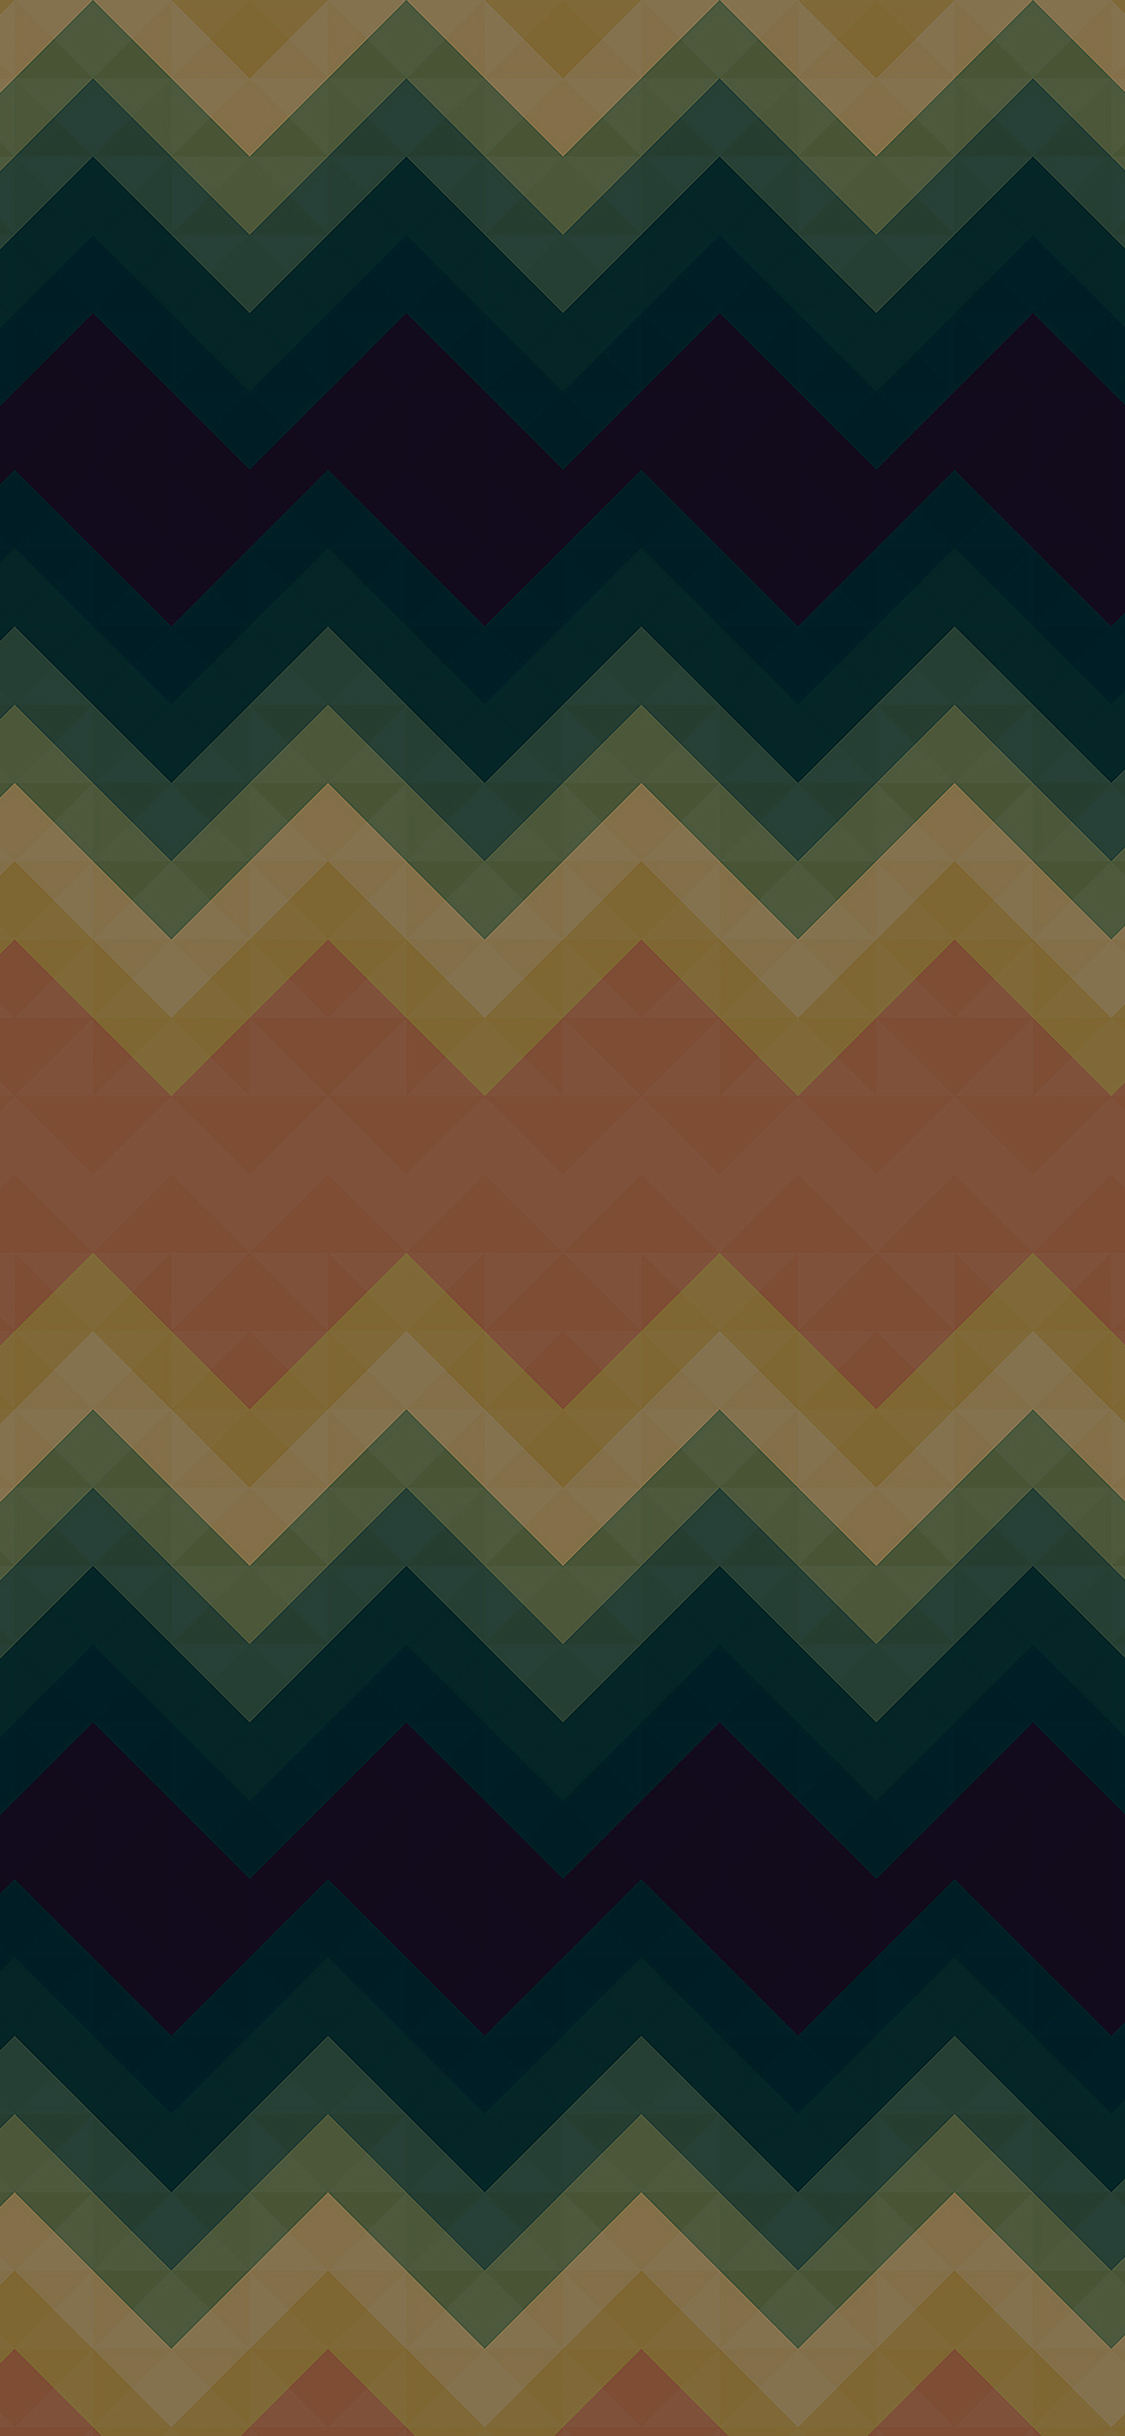 iPhoneXpapers.com-Apple-iPhone-wallpaper-vd56-zigzag-pattern-triangle-art-line-wallpaper